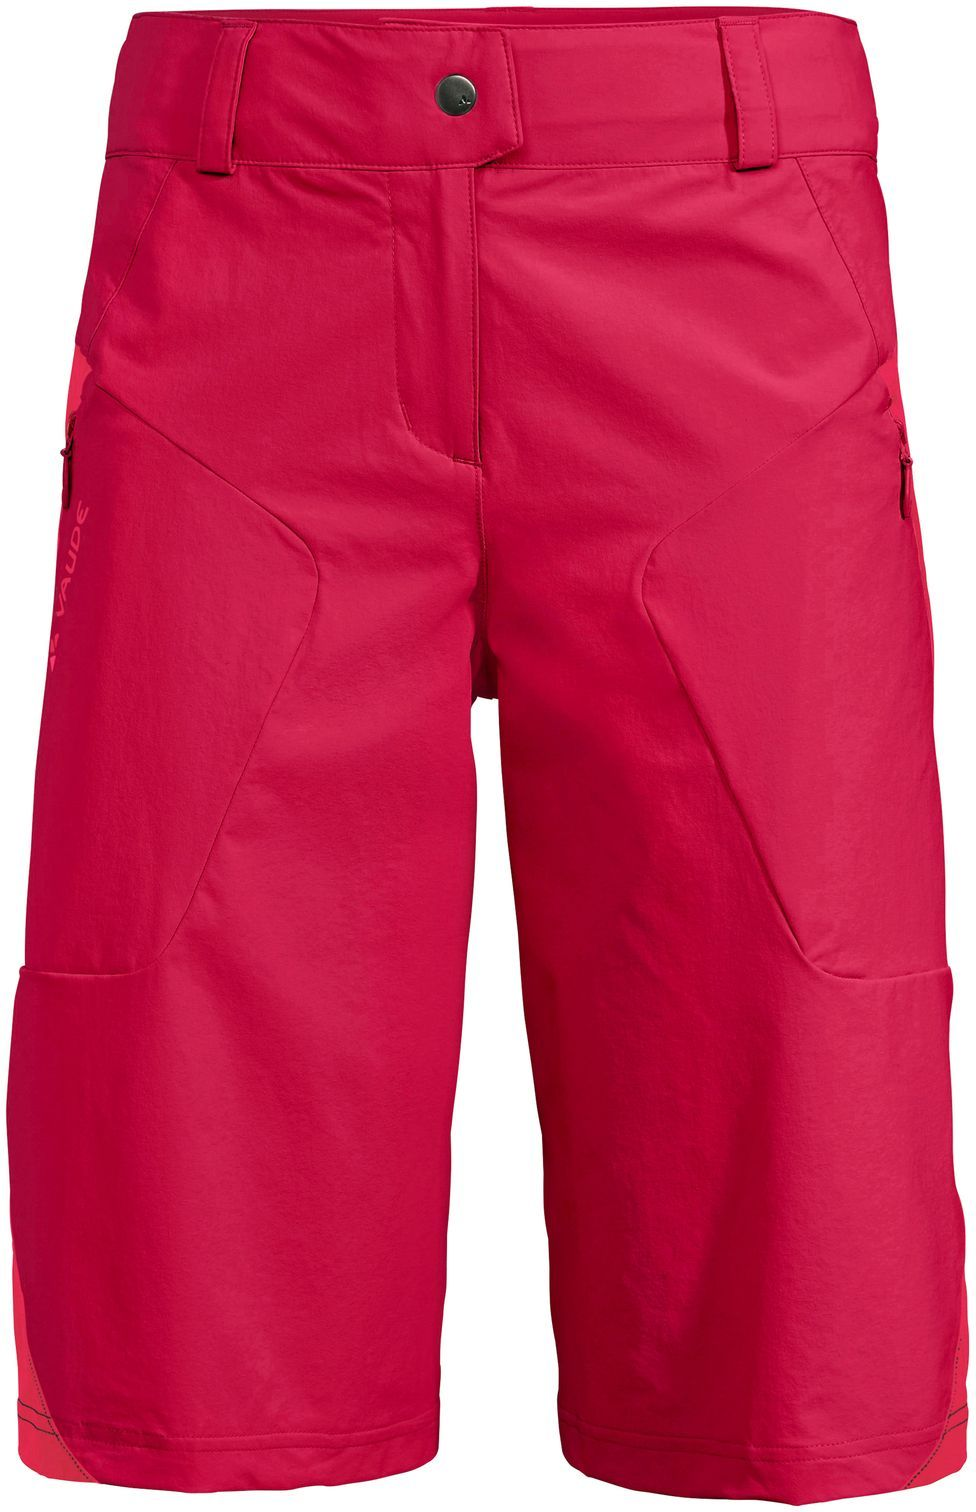 Vaude Women's Altissimo Shorts II - cranberry XS